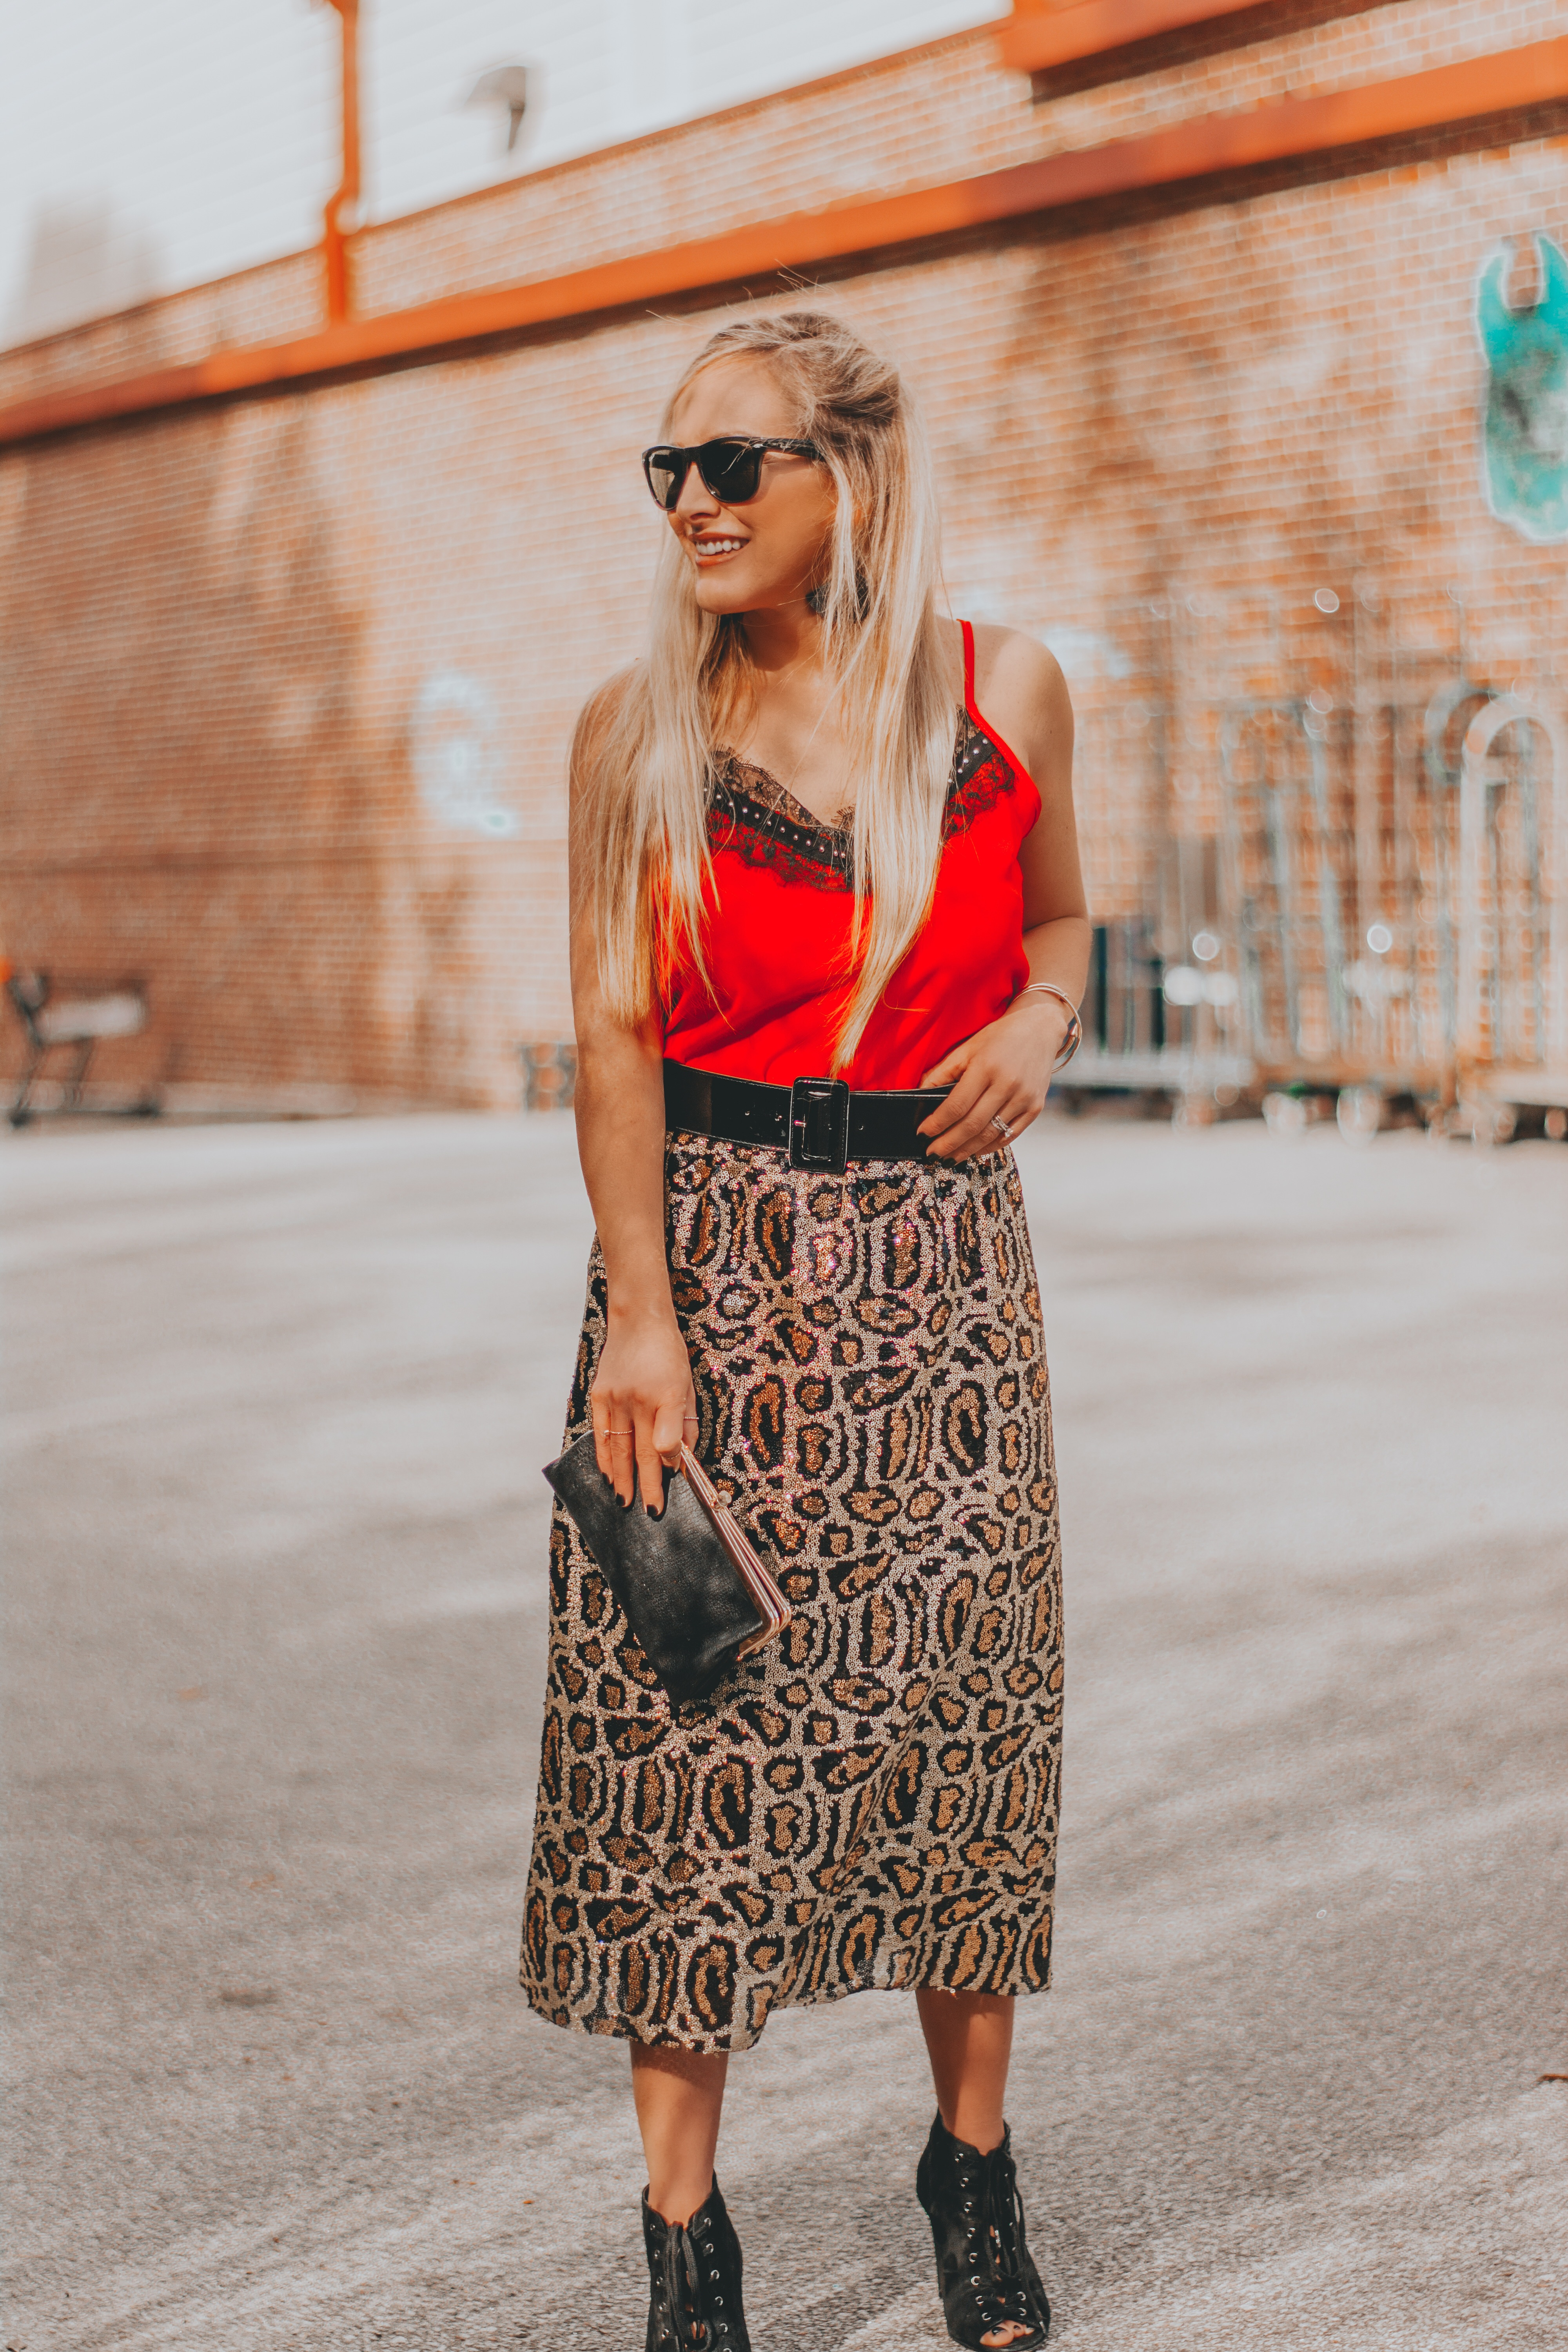 $25 Leopard Sequin Skirt + Budget Friendly Valentine's Outfit Inspo | BreeAtLast.com